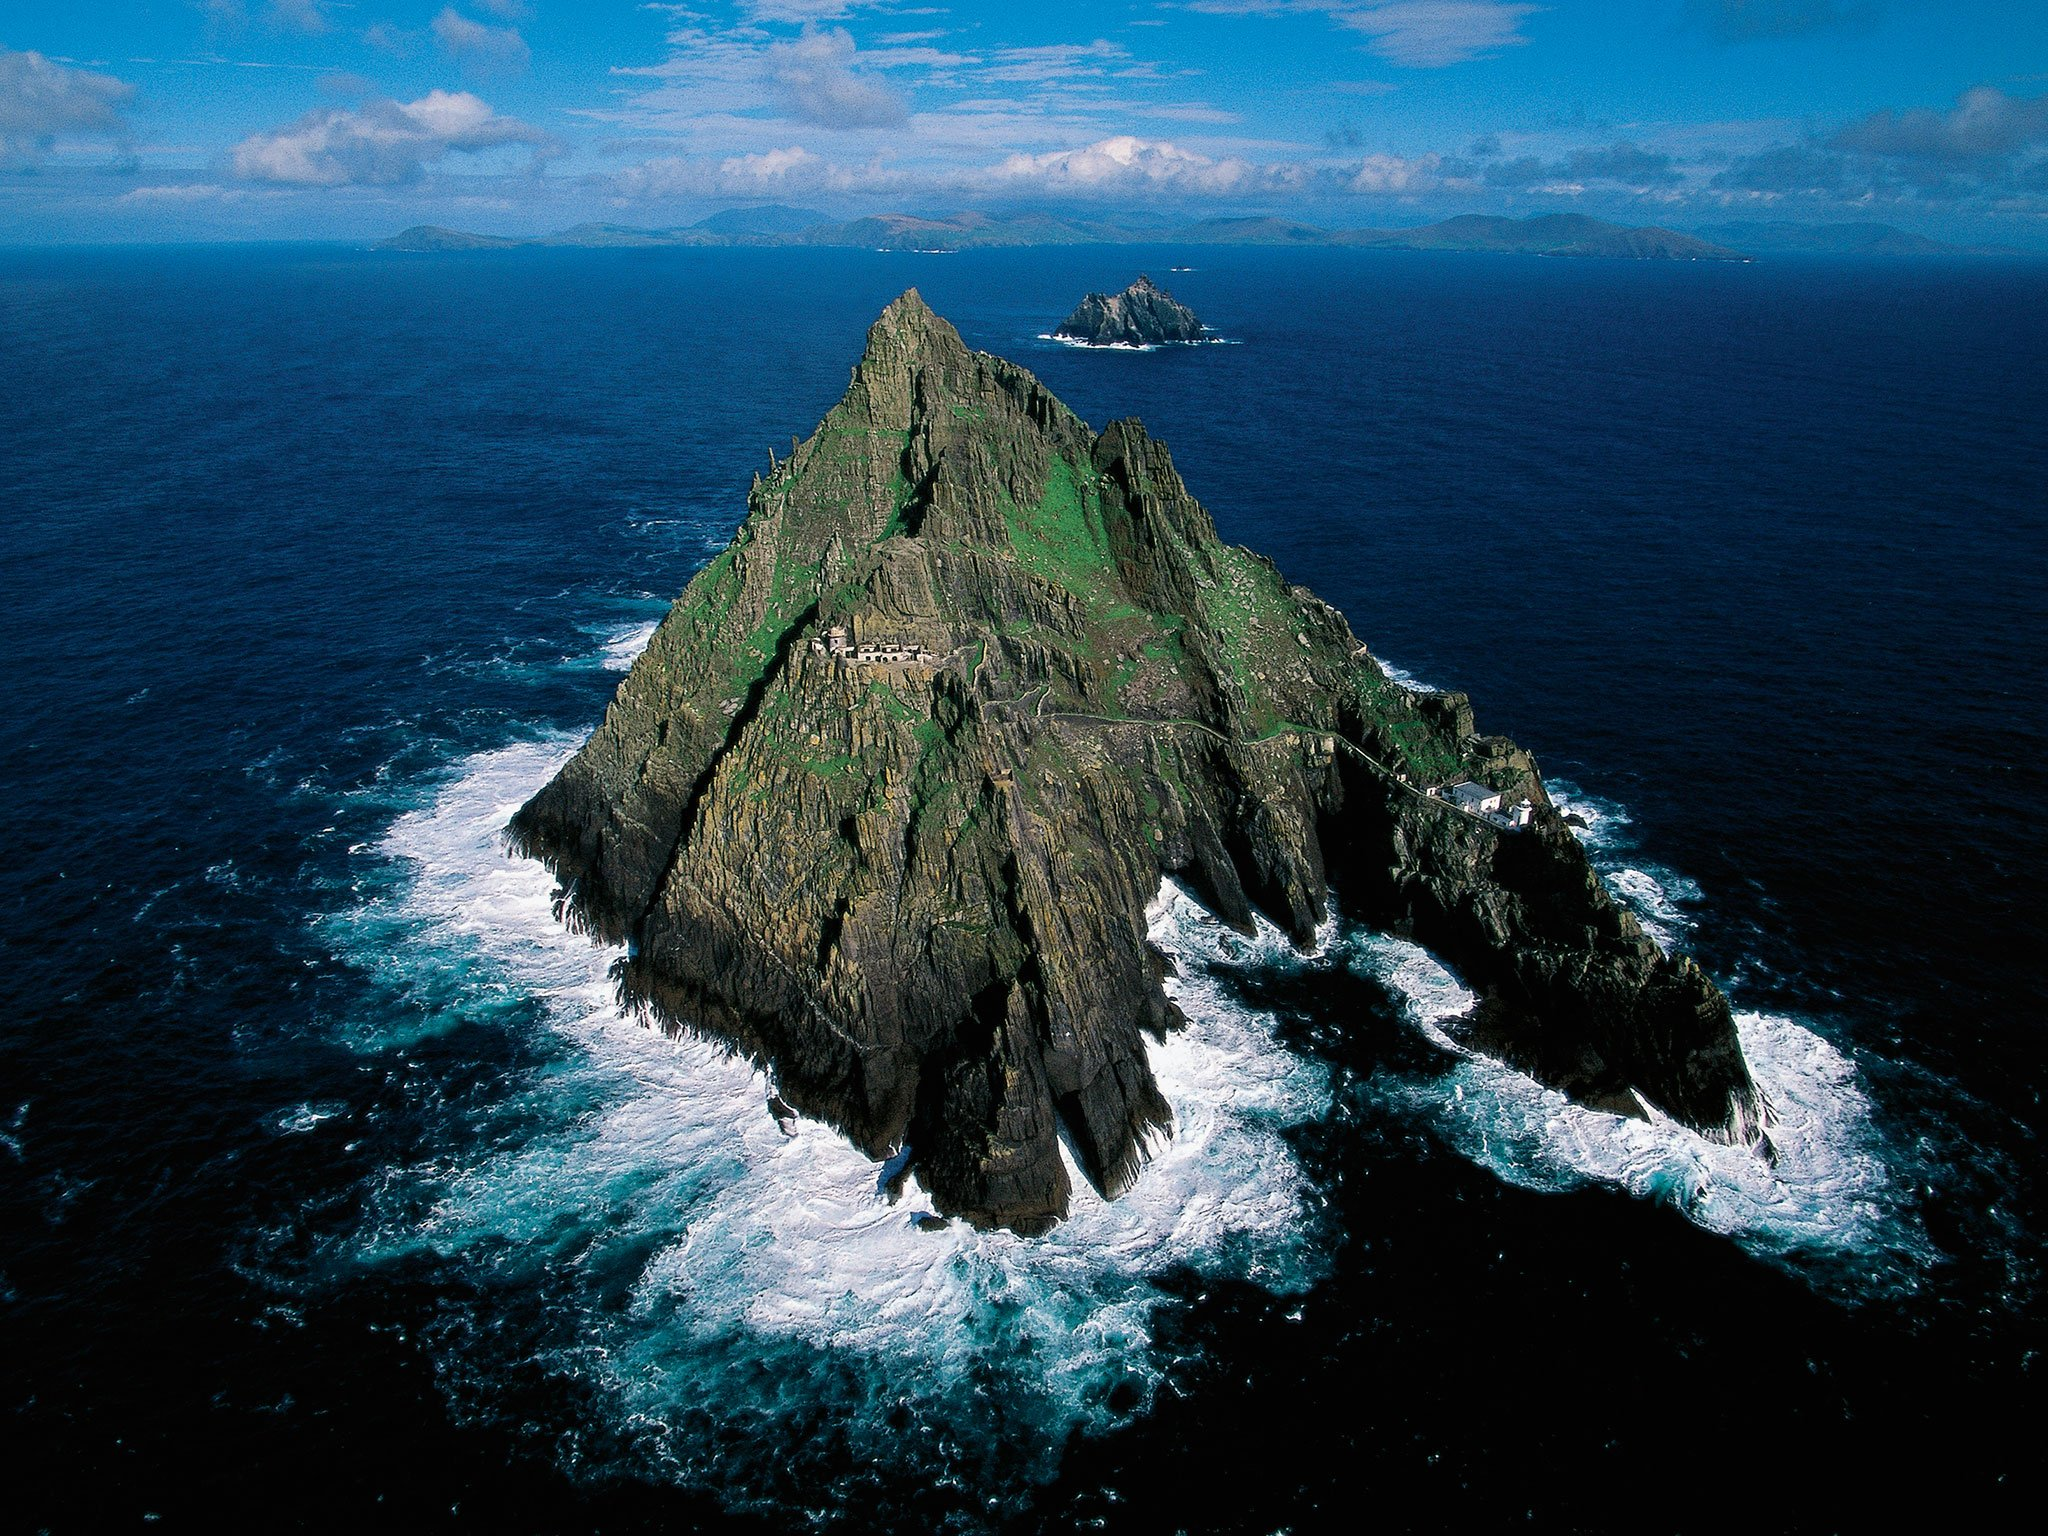 Skellig Michael is 7 miles west of Ireland and is home to a monastery which was in use from the 7th to 12th centuries